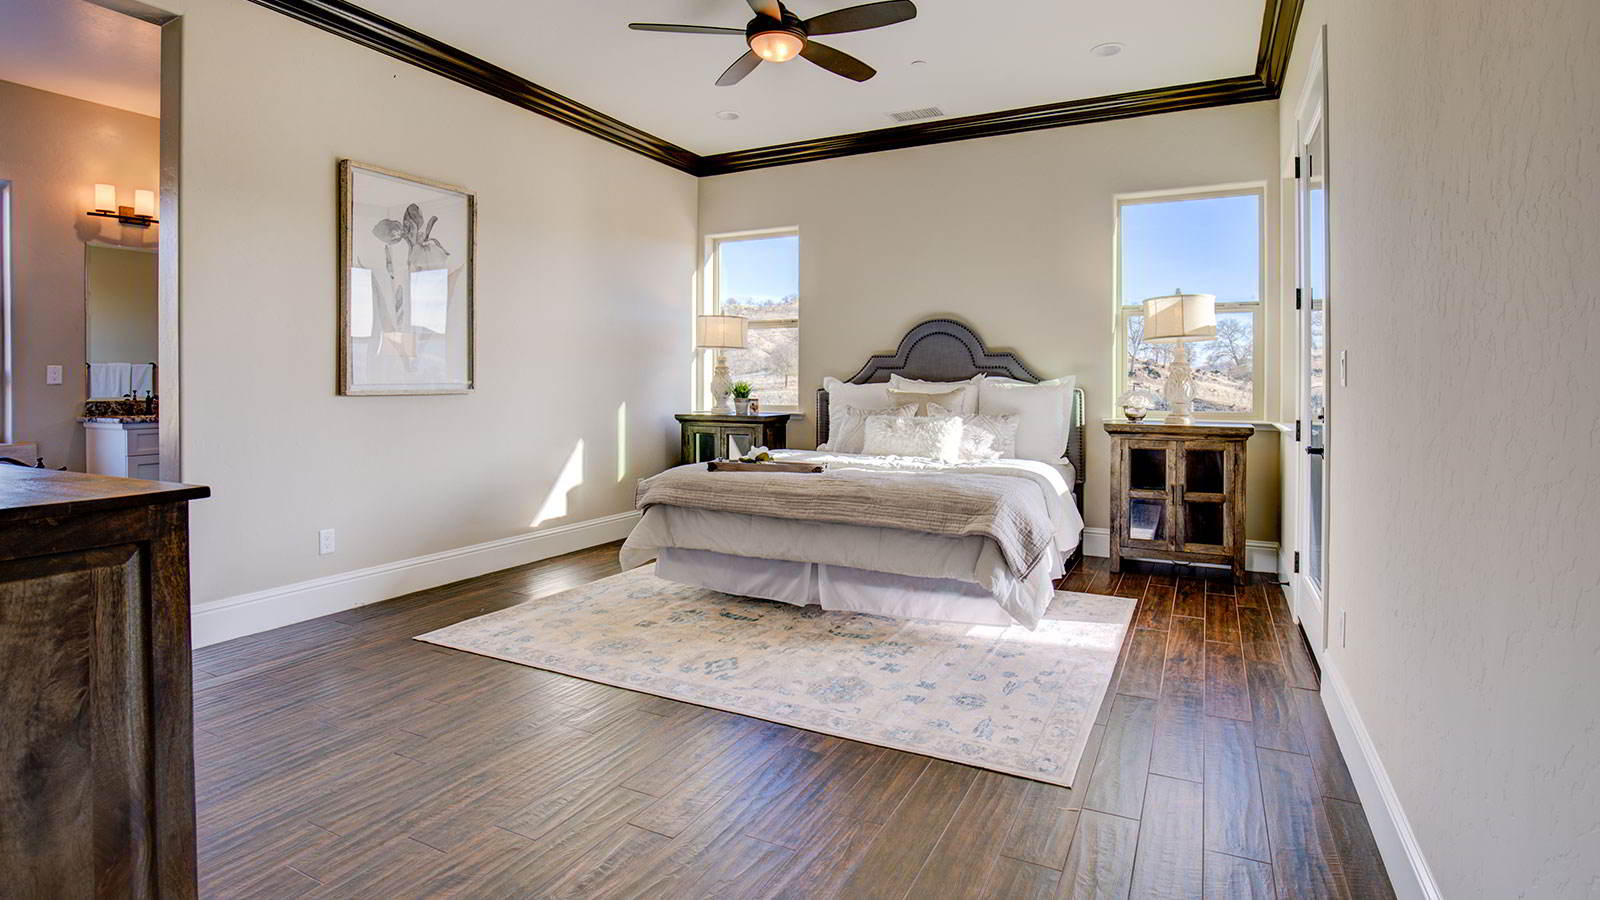 The rustic farmhouse inspired nightstands in this Estates line owner's suite offer plenty of storage and style.